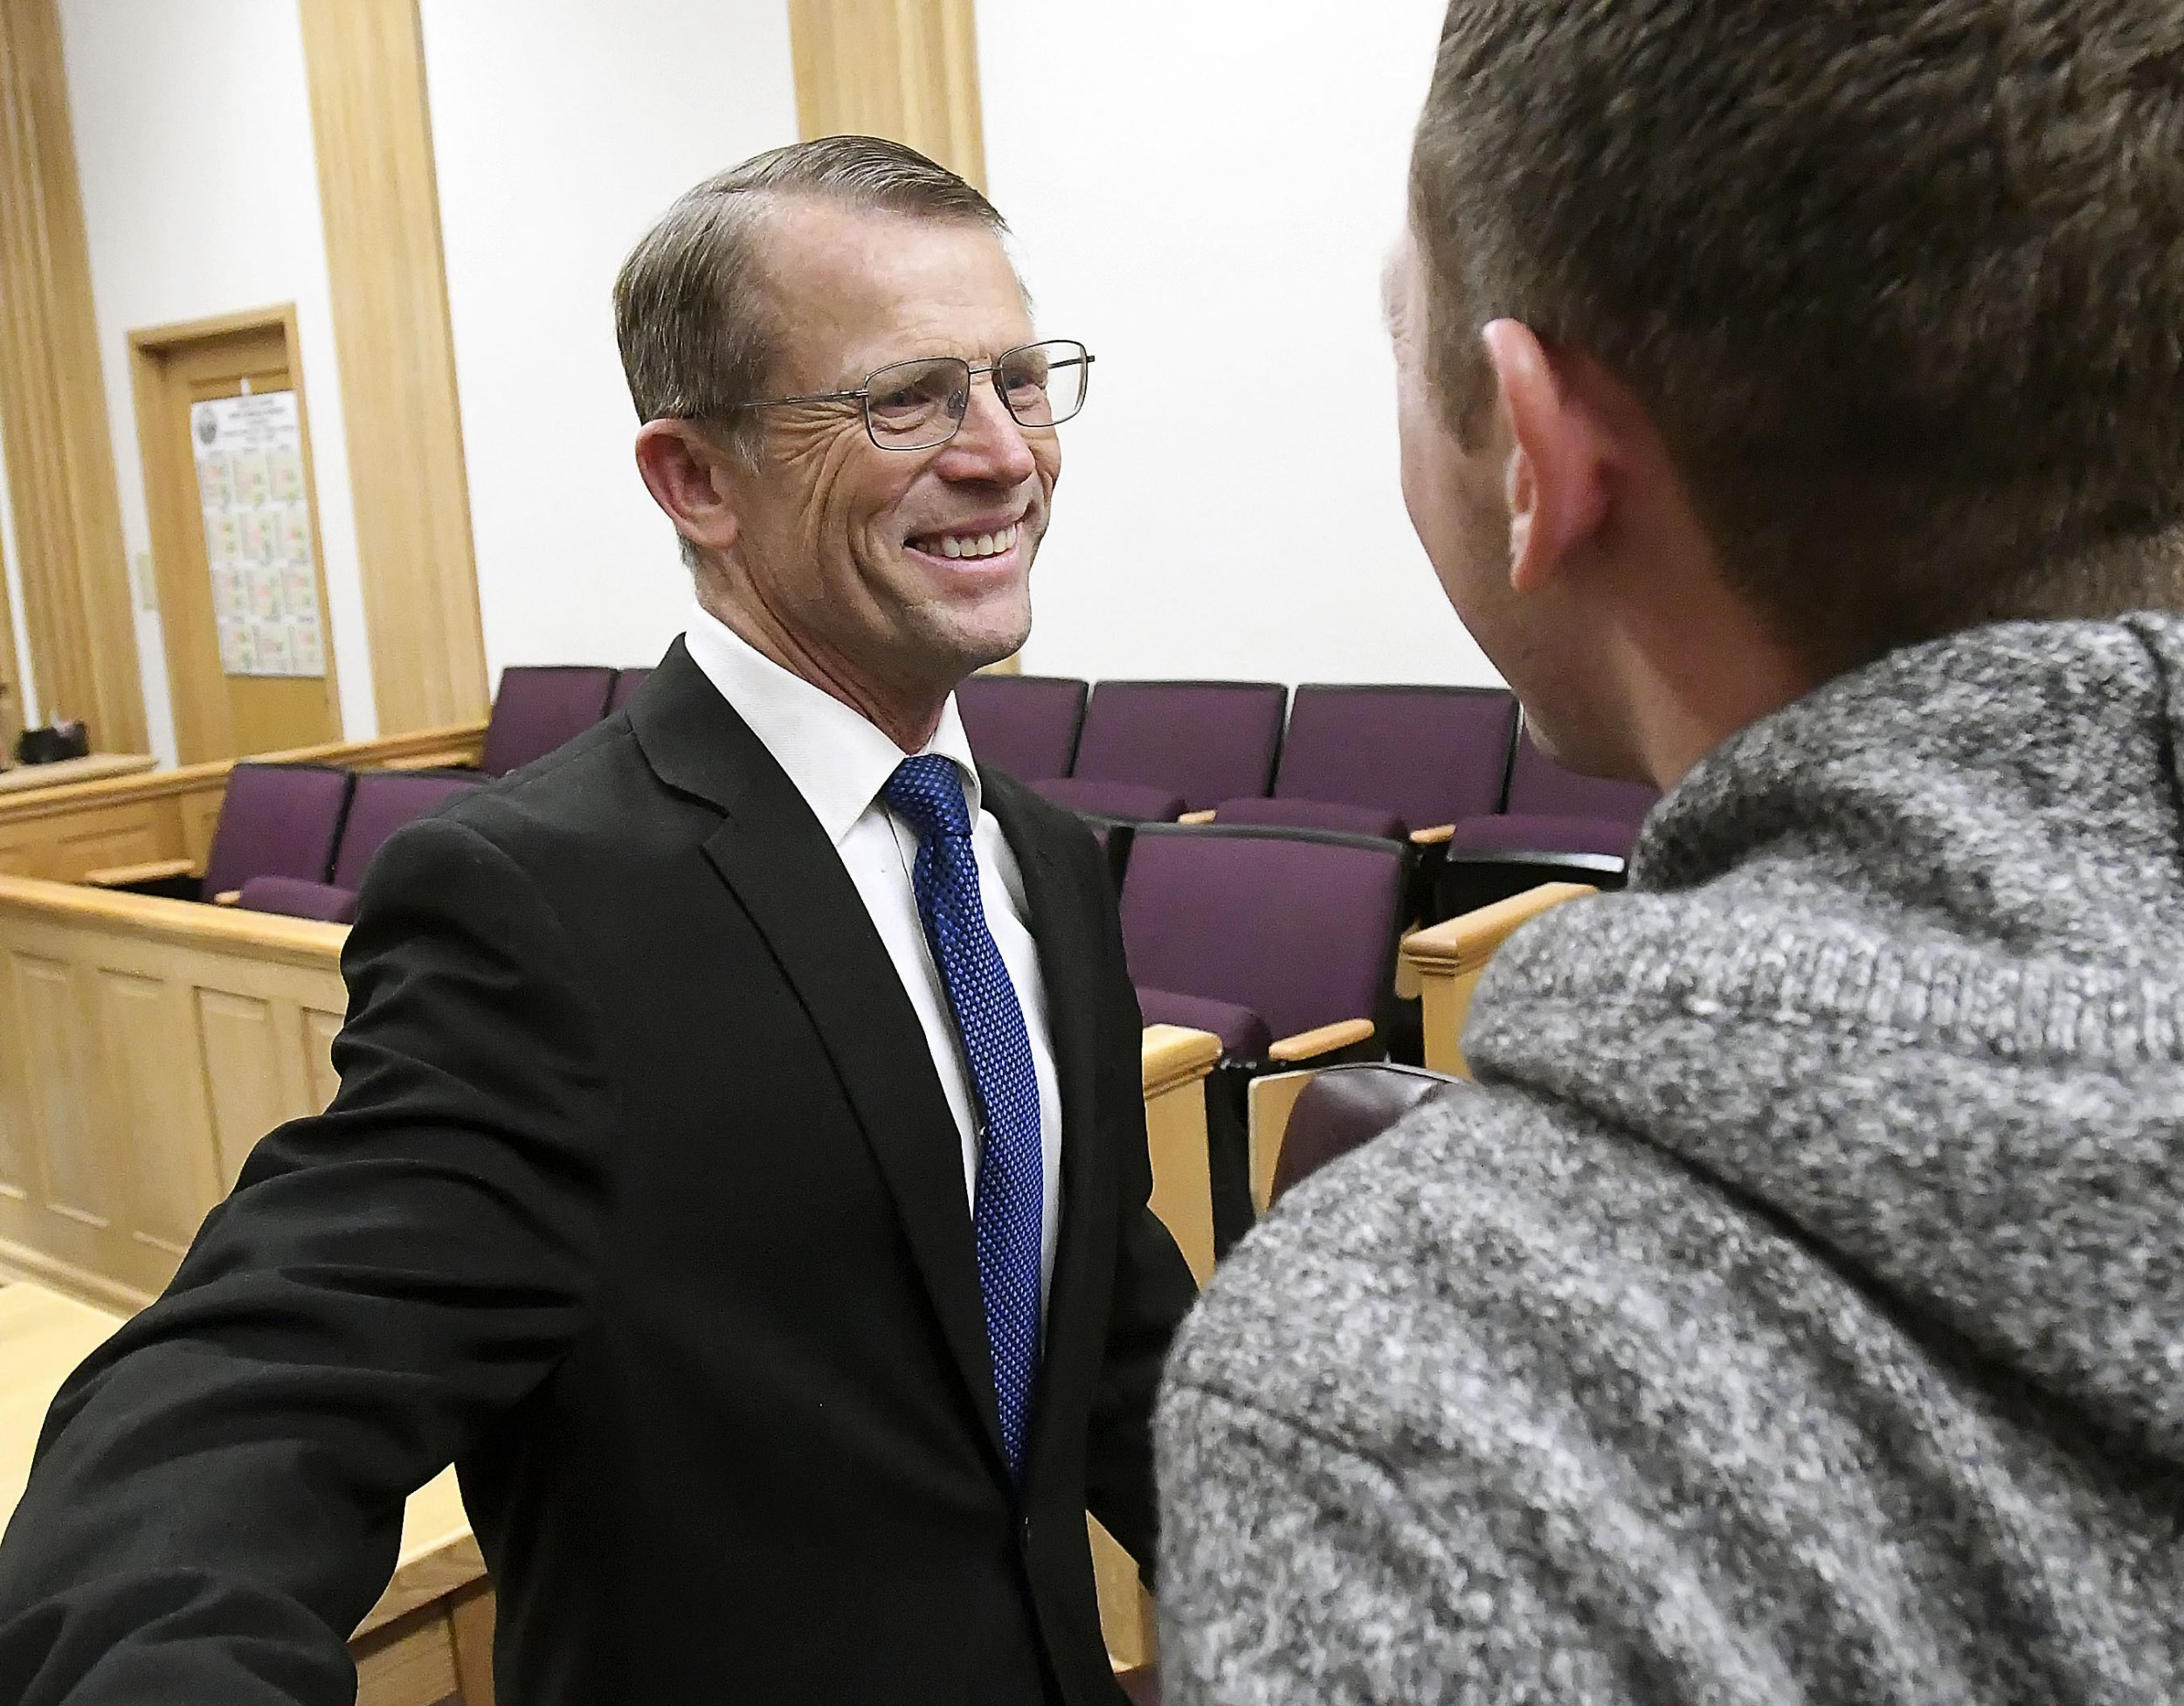 Robert Crosland smiles at son Mario Crosland after Robert was found not guilty of misdemeanor animal cruelty, Friday, Jan. 4, 2019, in Preston, Idaho. Crosland was on trial for feeding a live puppy to a snapping turtle in front of students at Preston Junior High School. (Eli Lucero/Herald Journal via AP)